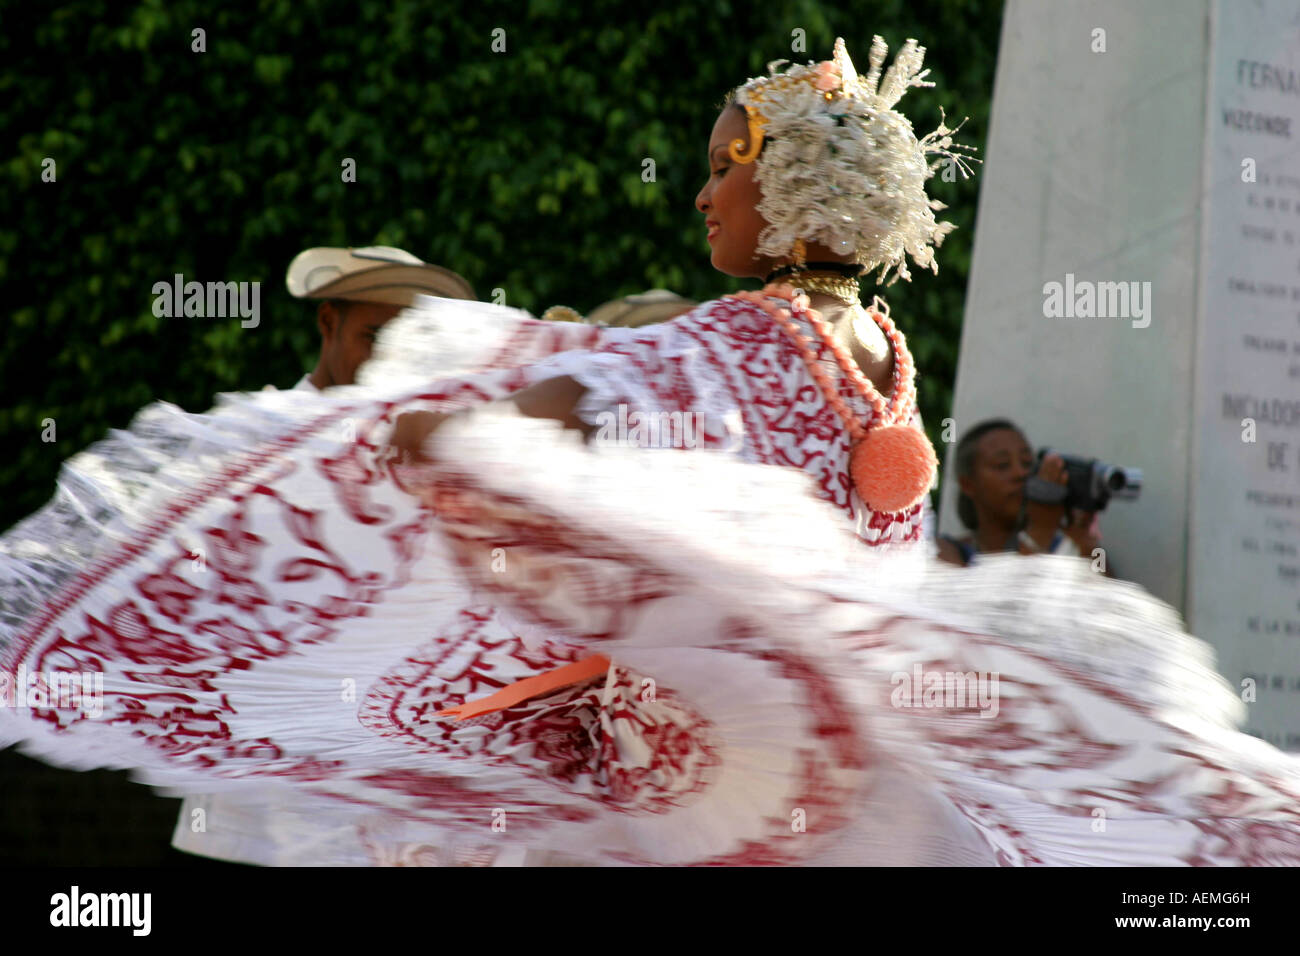 A fast moving pollera dancer in Panama - Stock Image